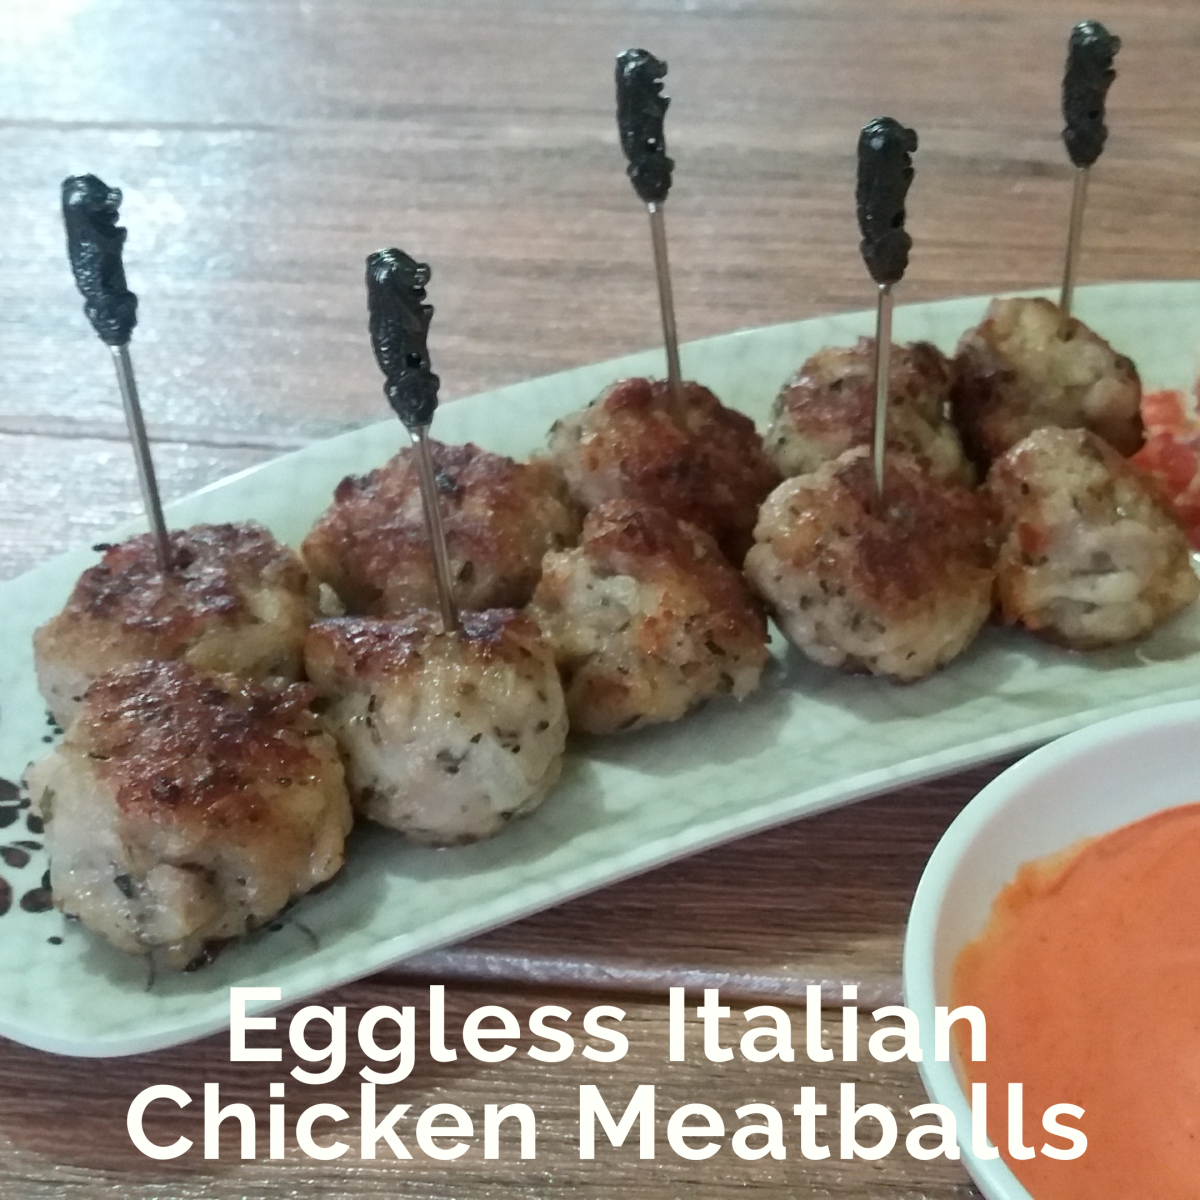 Learn how to prepare Italian chicken meatballs without eggs.